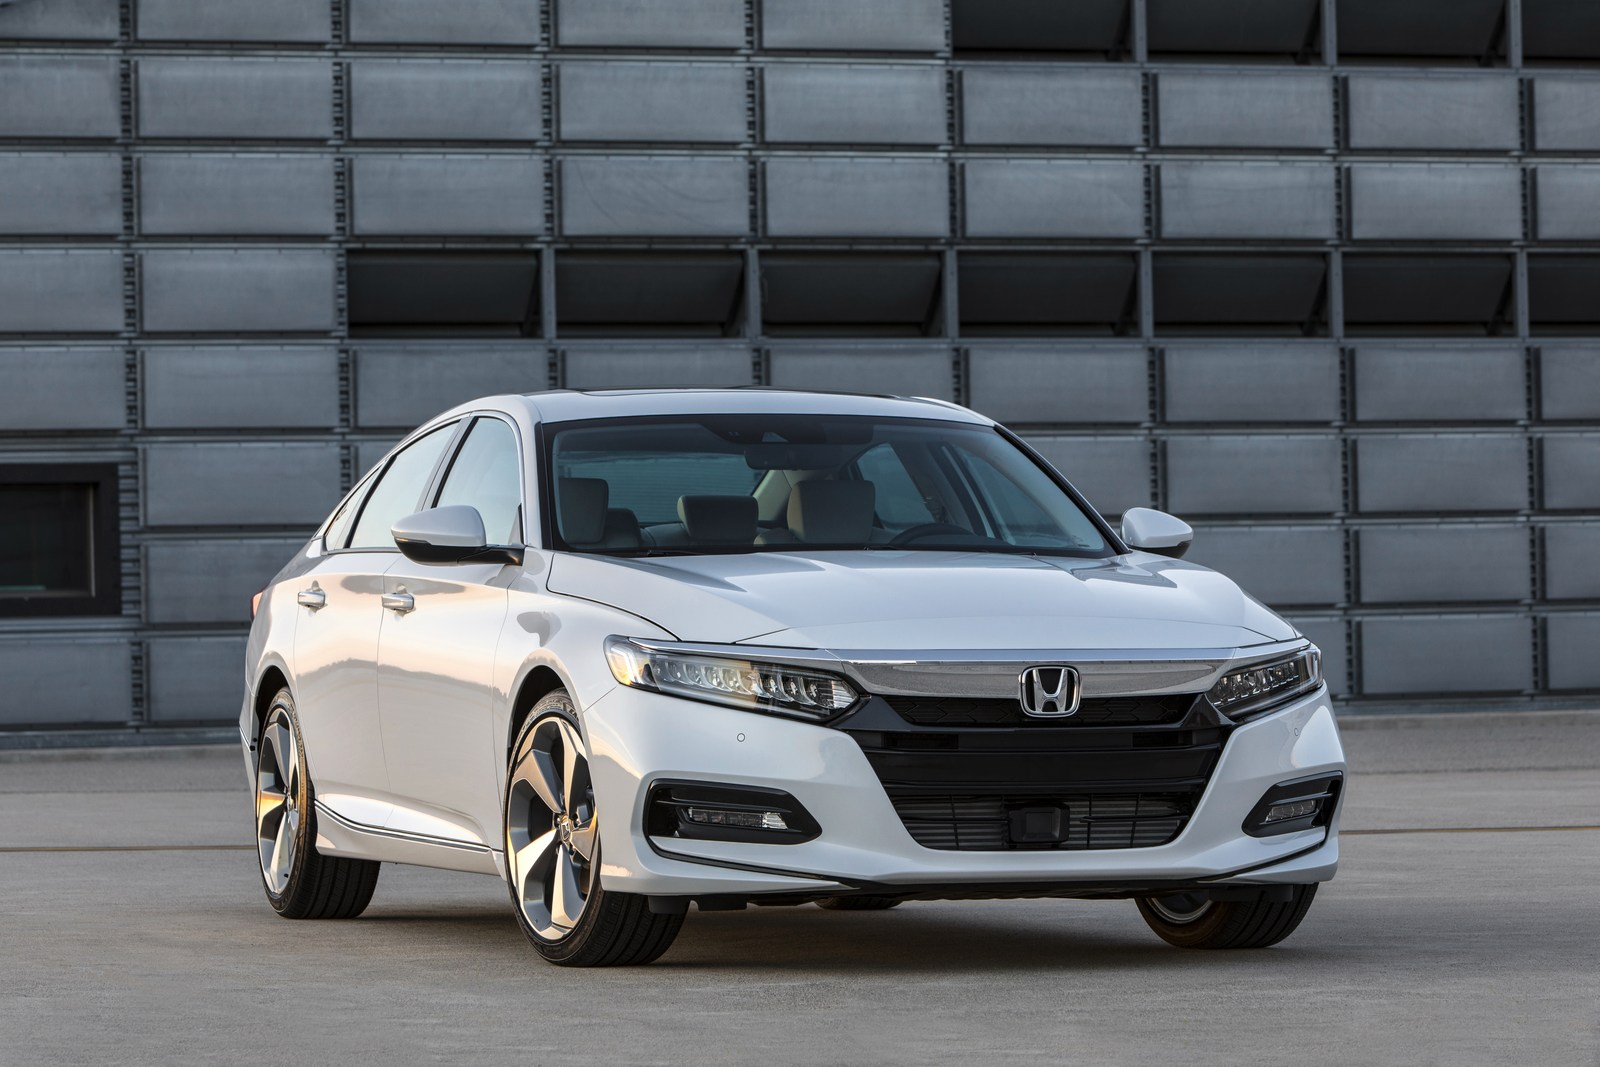 2018 honda accord type r gets closer to reality thanks to. Black Bedroom Furniture Sets. Home Design Ideas